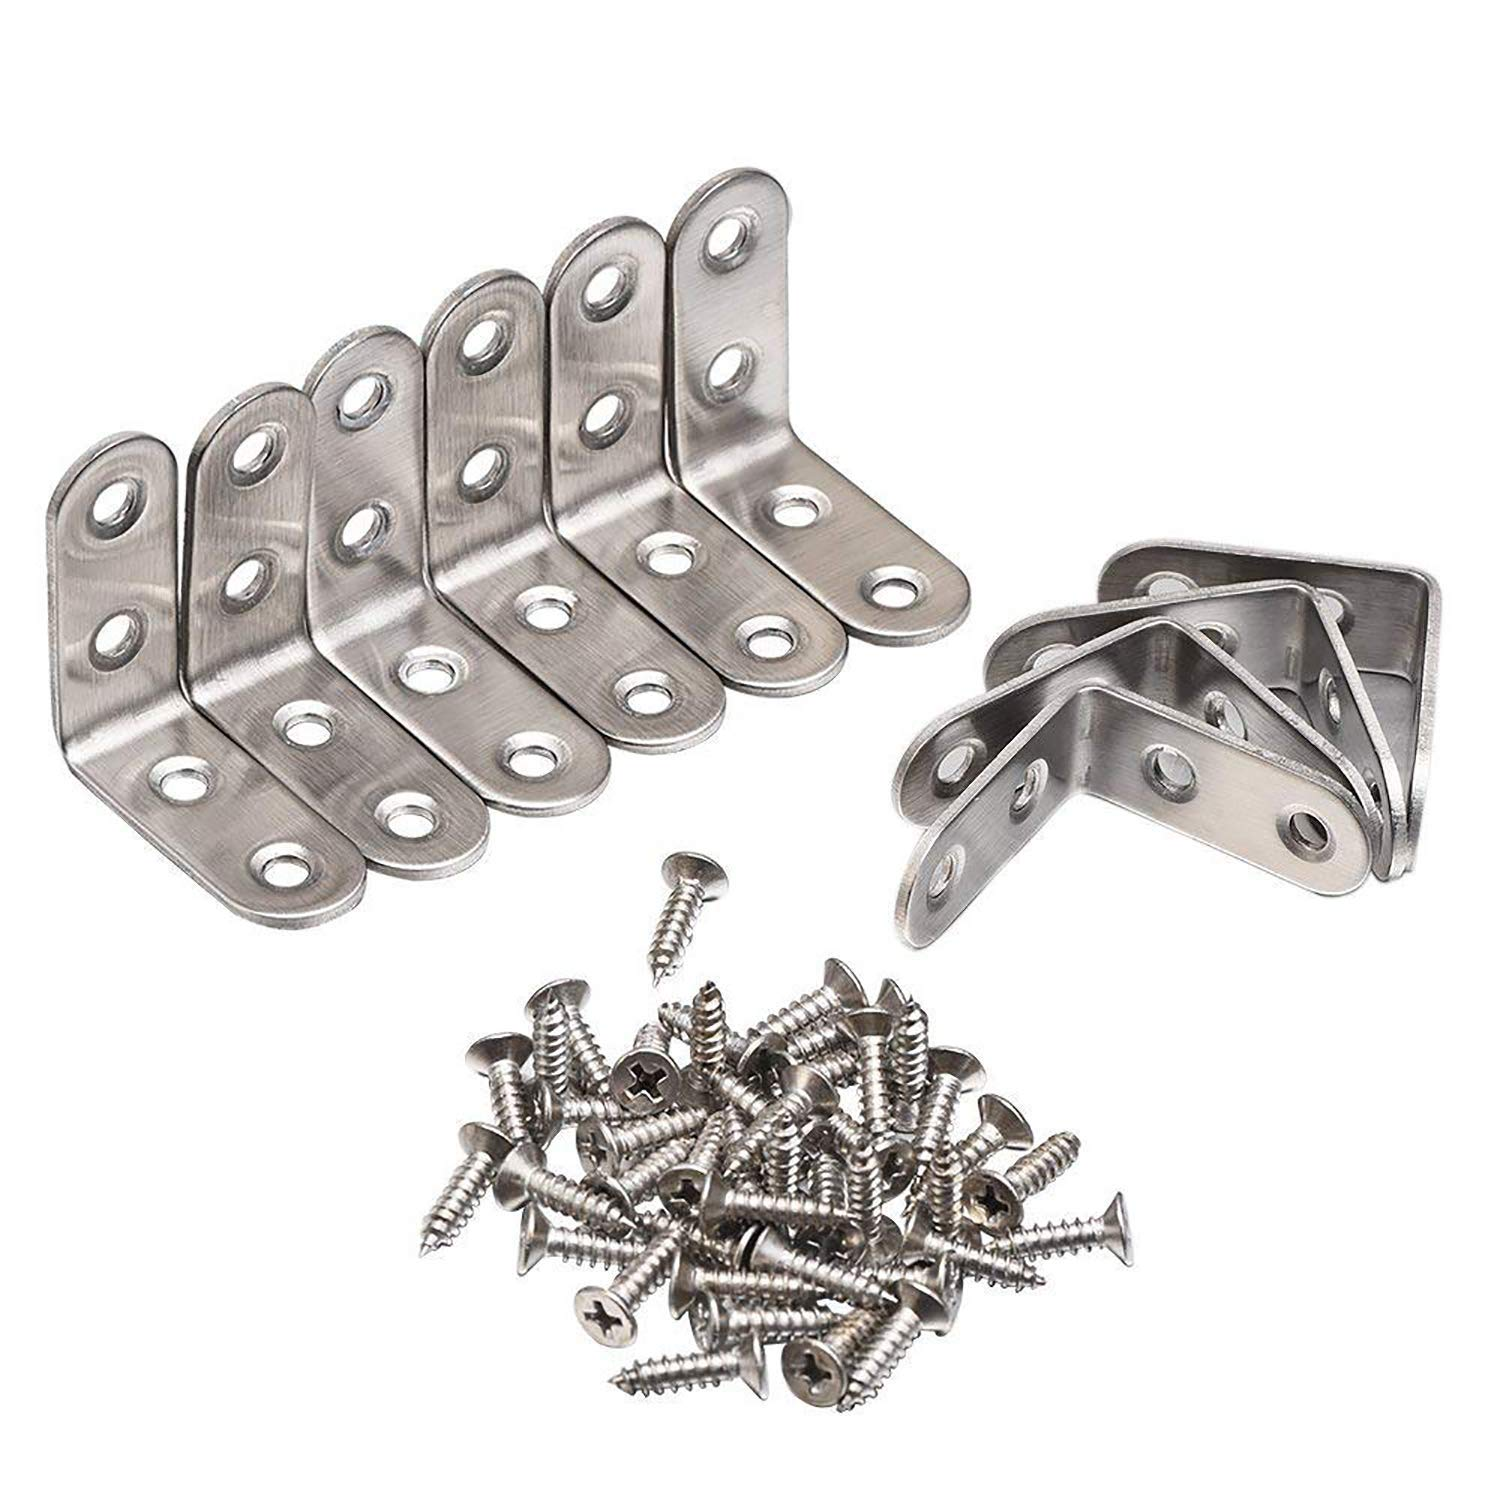 Corner Brace 90 Degree Right Angle Brackets Stainless Steel Corner Braces with Screws 10 Pack by Ashnna 40 40 mm